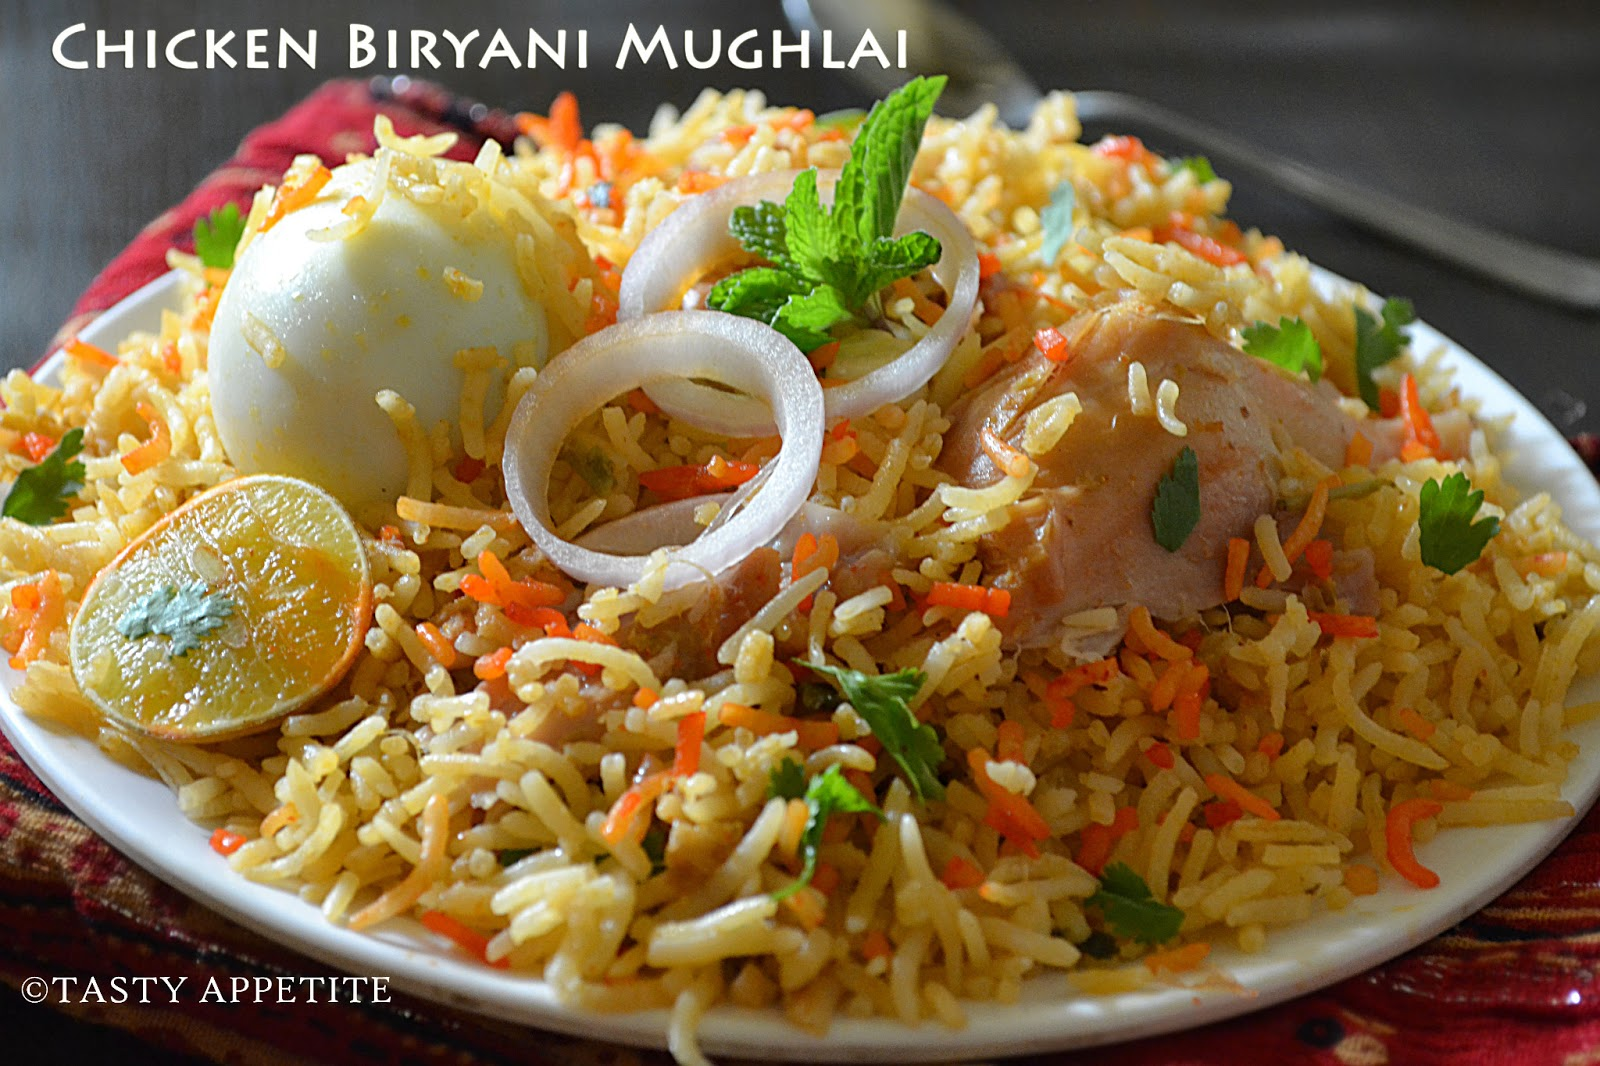 How to make mughlai biryani mughlai chicken biryani spicy how to make mughlai biryani mughlai chicken biryani spicy biryani recipes forumfinder Gallery